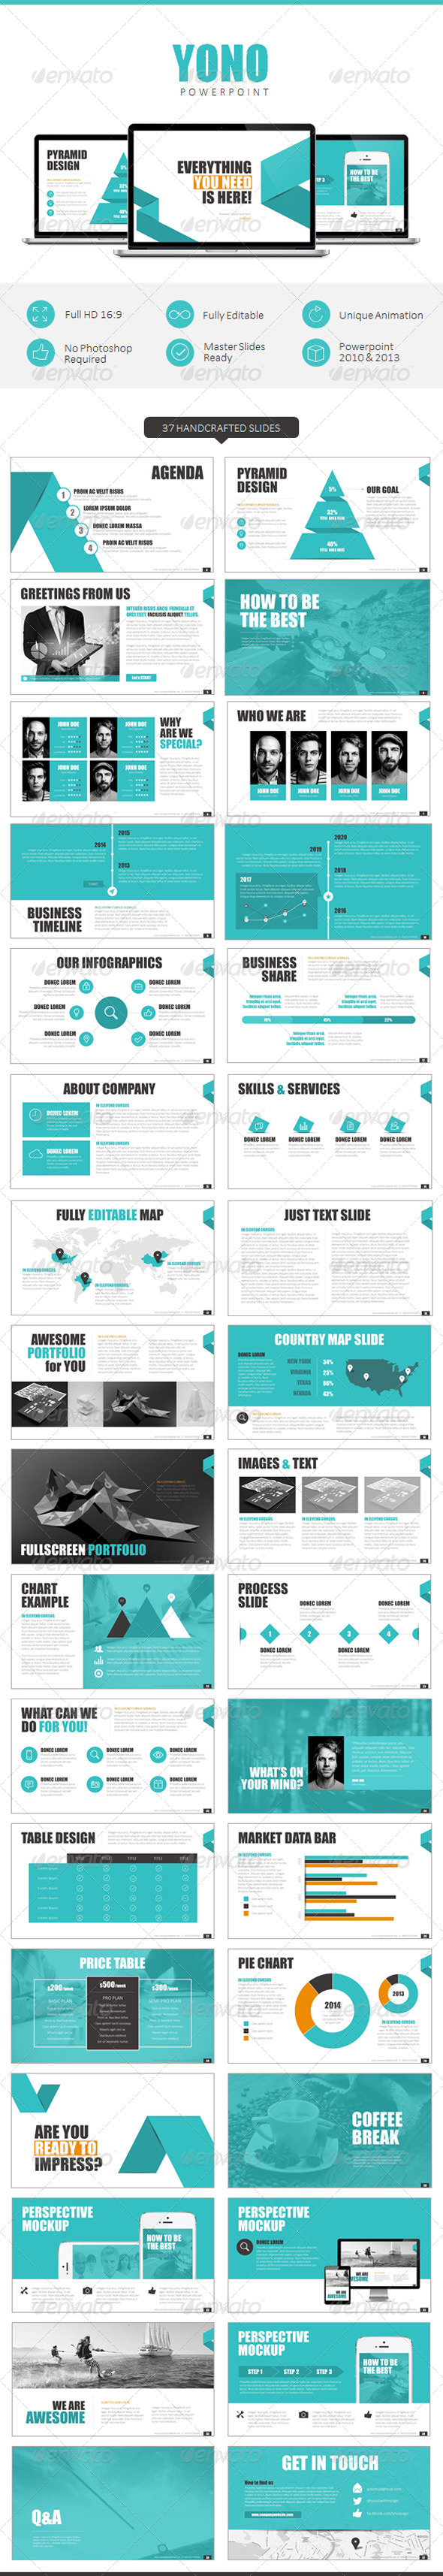 GraphicRiver YONO Powerpoint Template 8551502